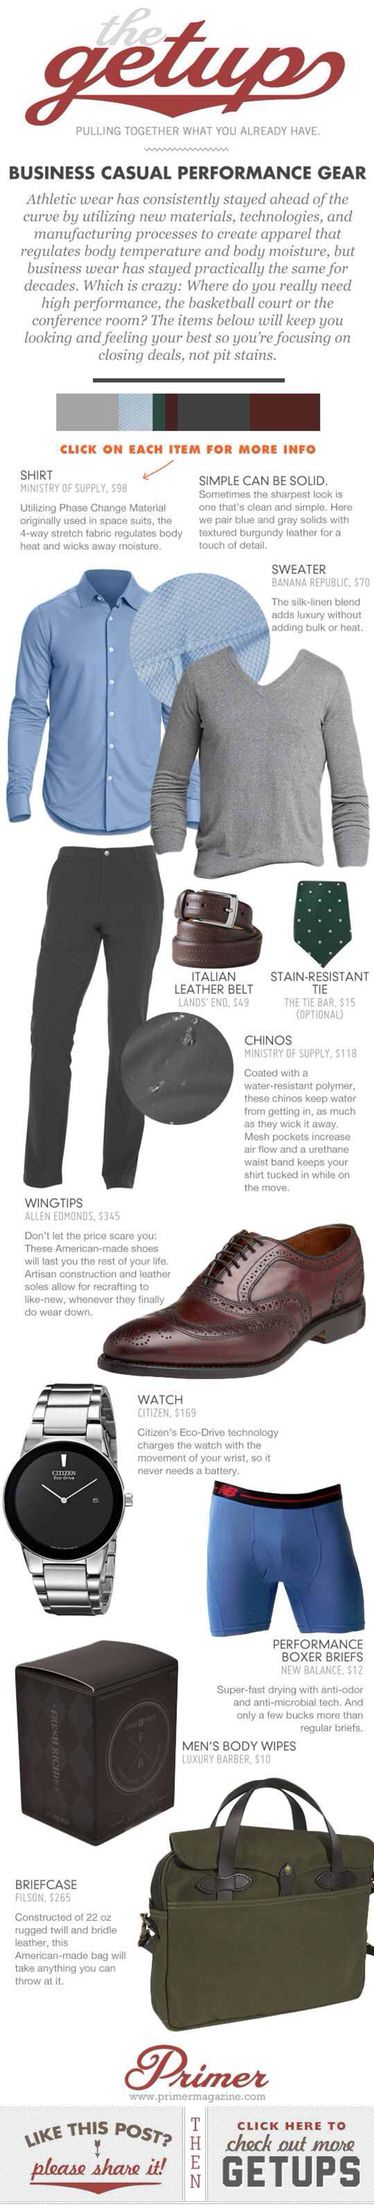 The Getup - Business Casual Performance Gear